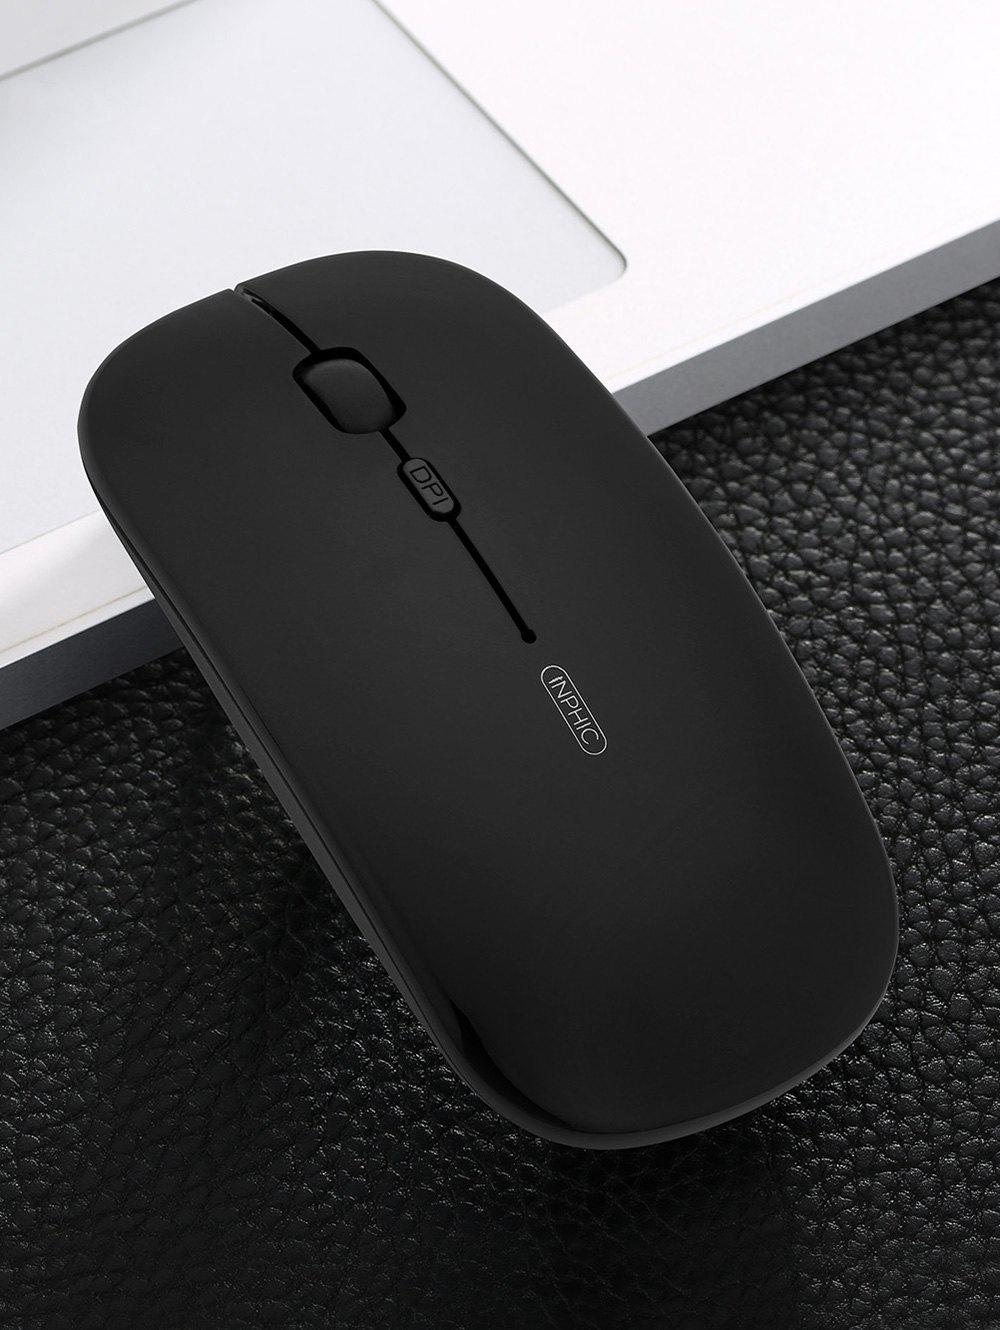 Best Inphic Ultra-thin Portable Mobile Wireless Mouse For Tablet